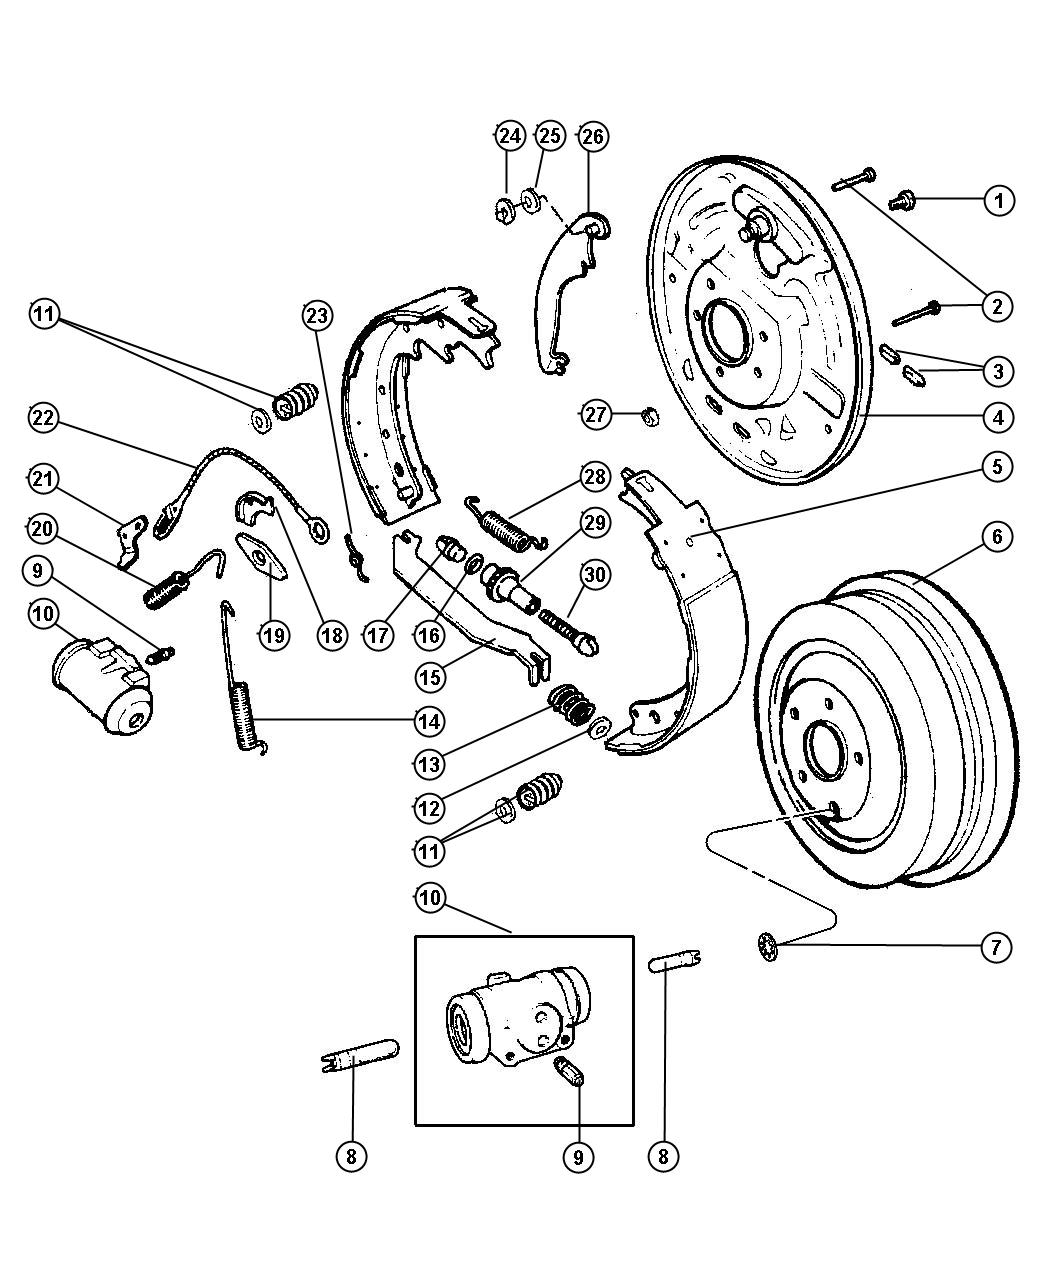 Diagram  Wiring Diagram Jeep Liberty 2002 Espa Ol Full Version Hd Quality Espa Ol